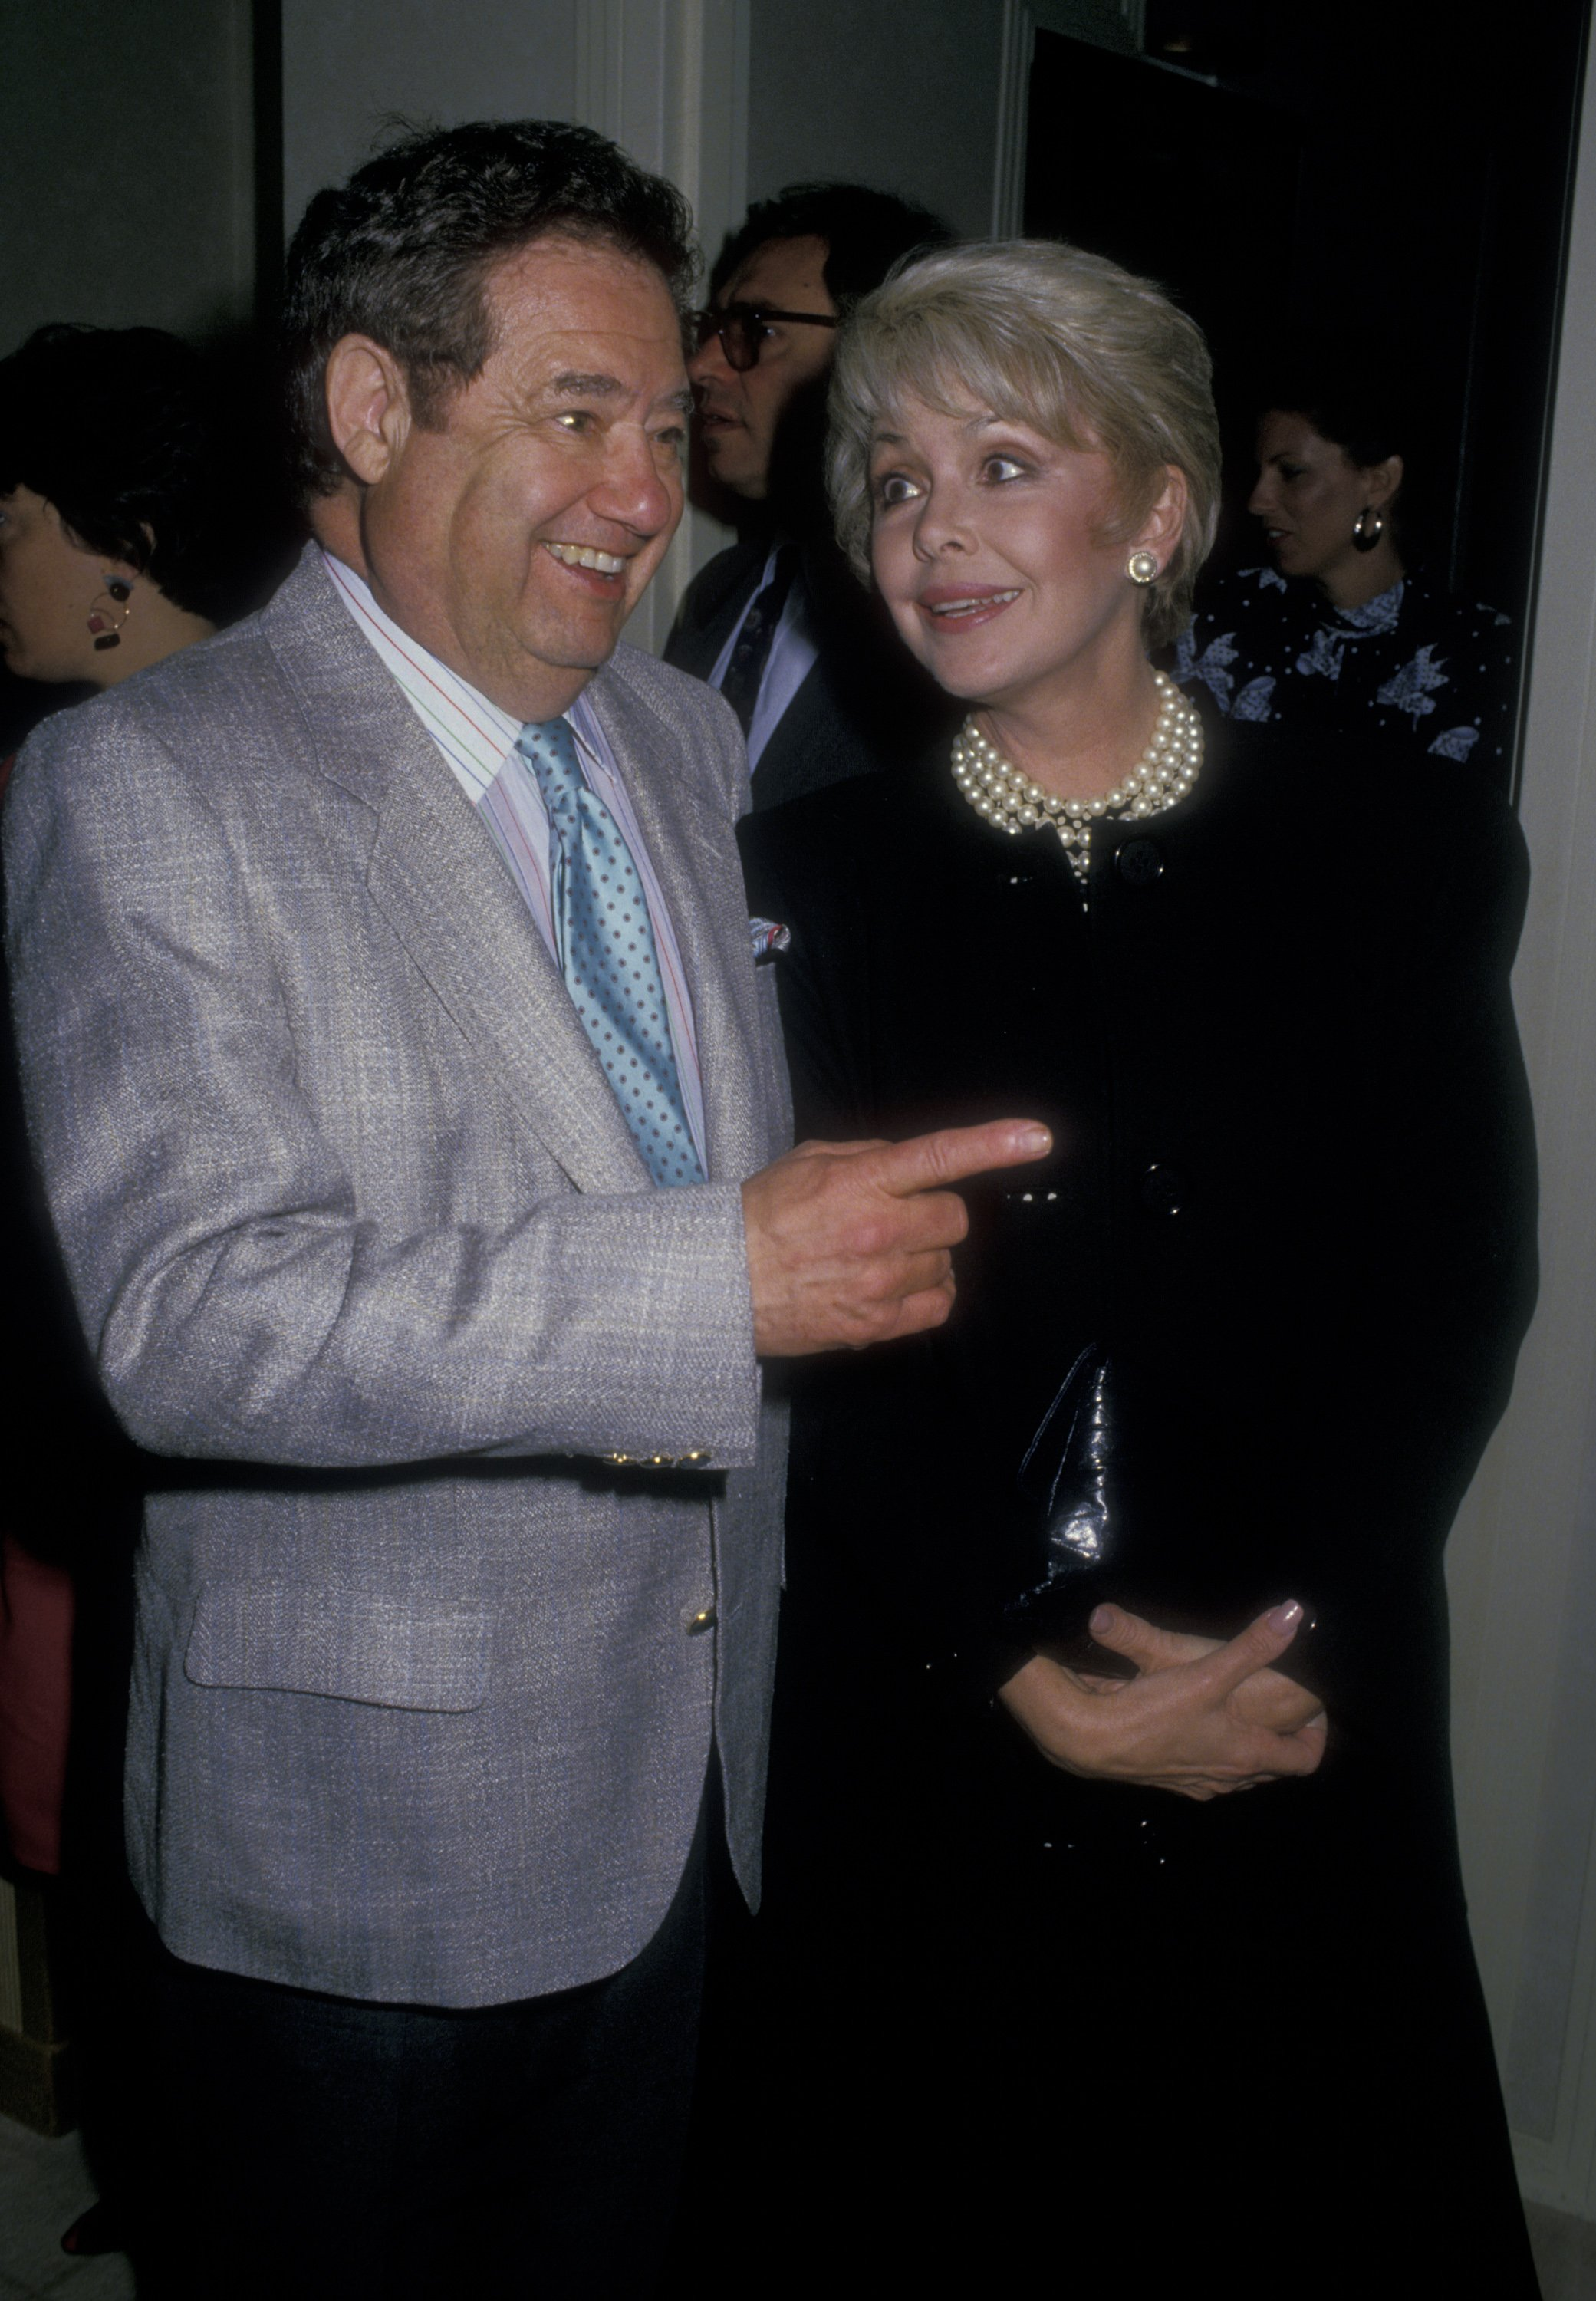 """Warren Cowan and Barbara Rush at the opening party for """"Sleuth"""" on July 6, 1988, at St. James Club in Beverly Hills, California 